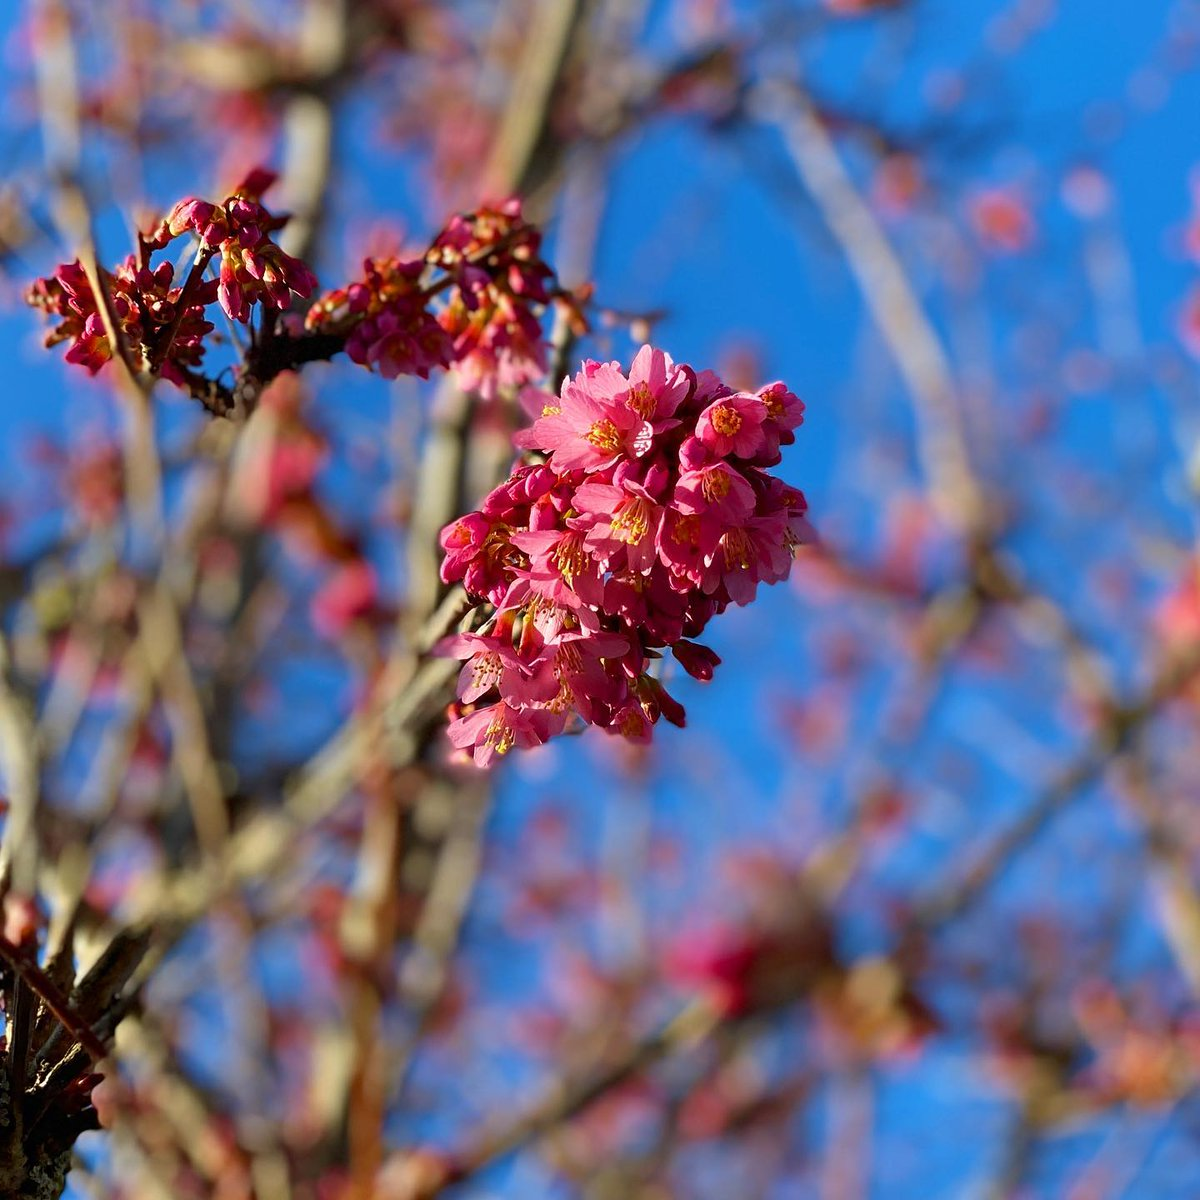 The first shoots (sprouts?) of blossom on my tree! Feeling very bouncy and energetic today, the sun is shining and it's nearly the weekend! Only 1 more week of homeschooling - yay!!!  #blossom #fridayvibes #friday #fridayfeeling #fridaymotivation #bluesky: